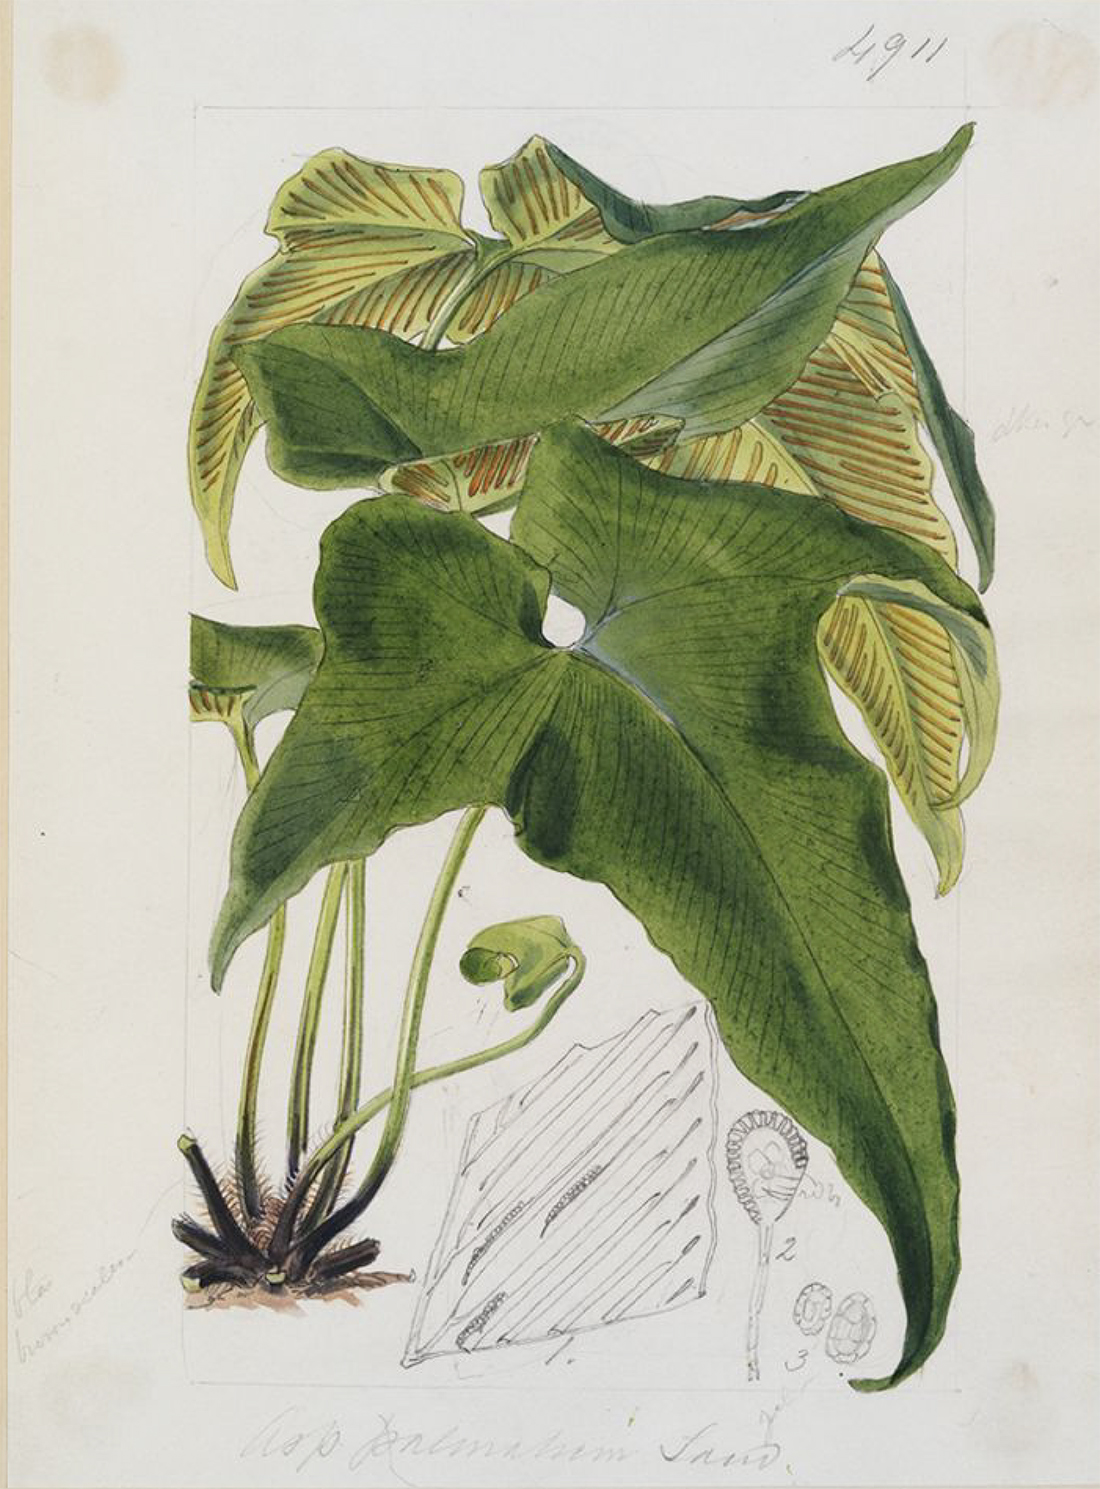 An 1856 fern illustration from Curtis's Botanical Magazine